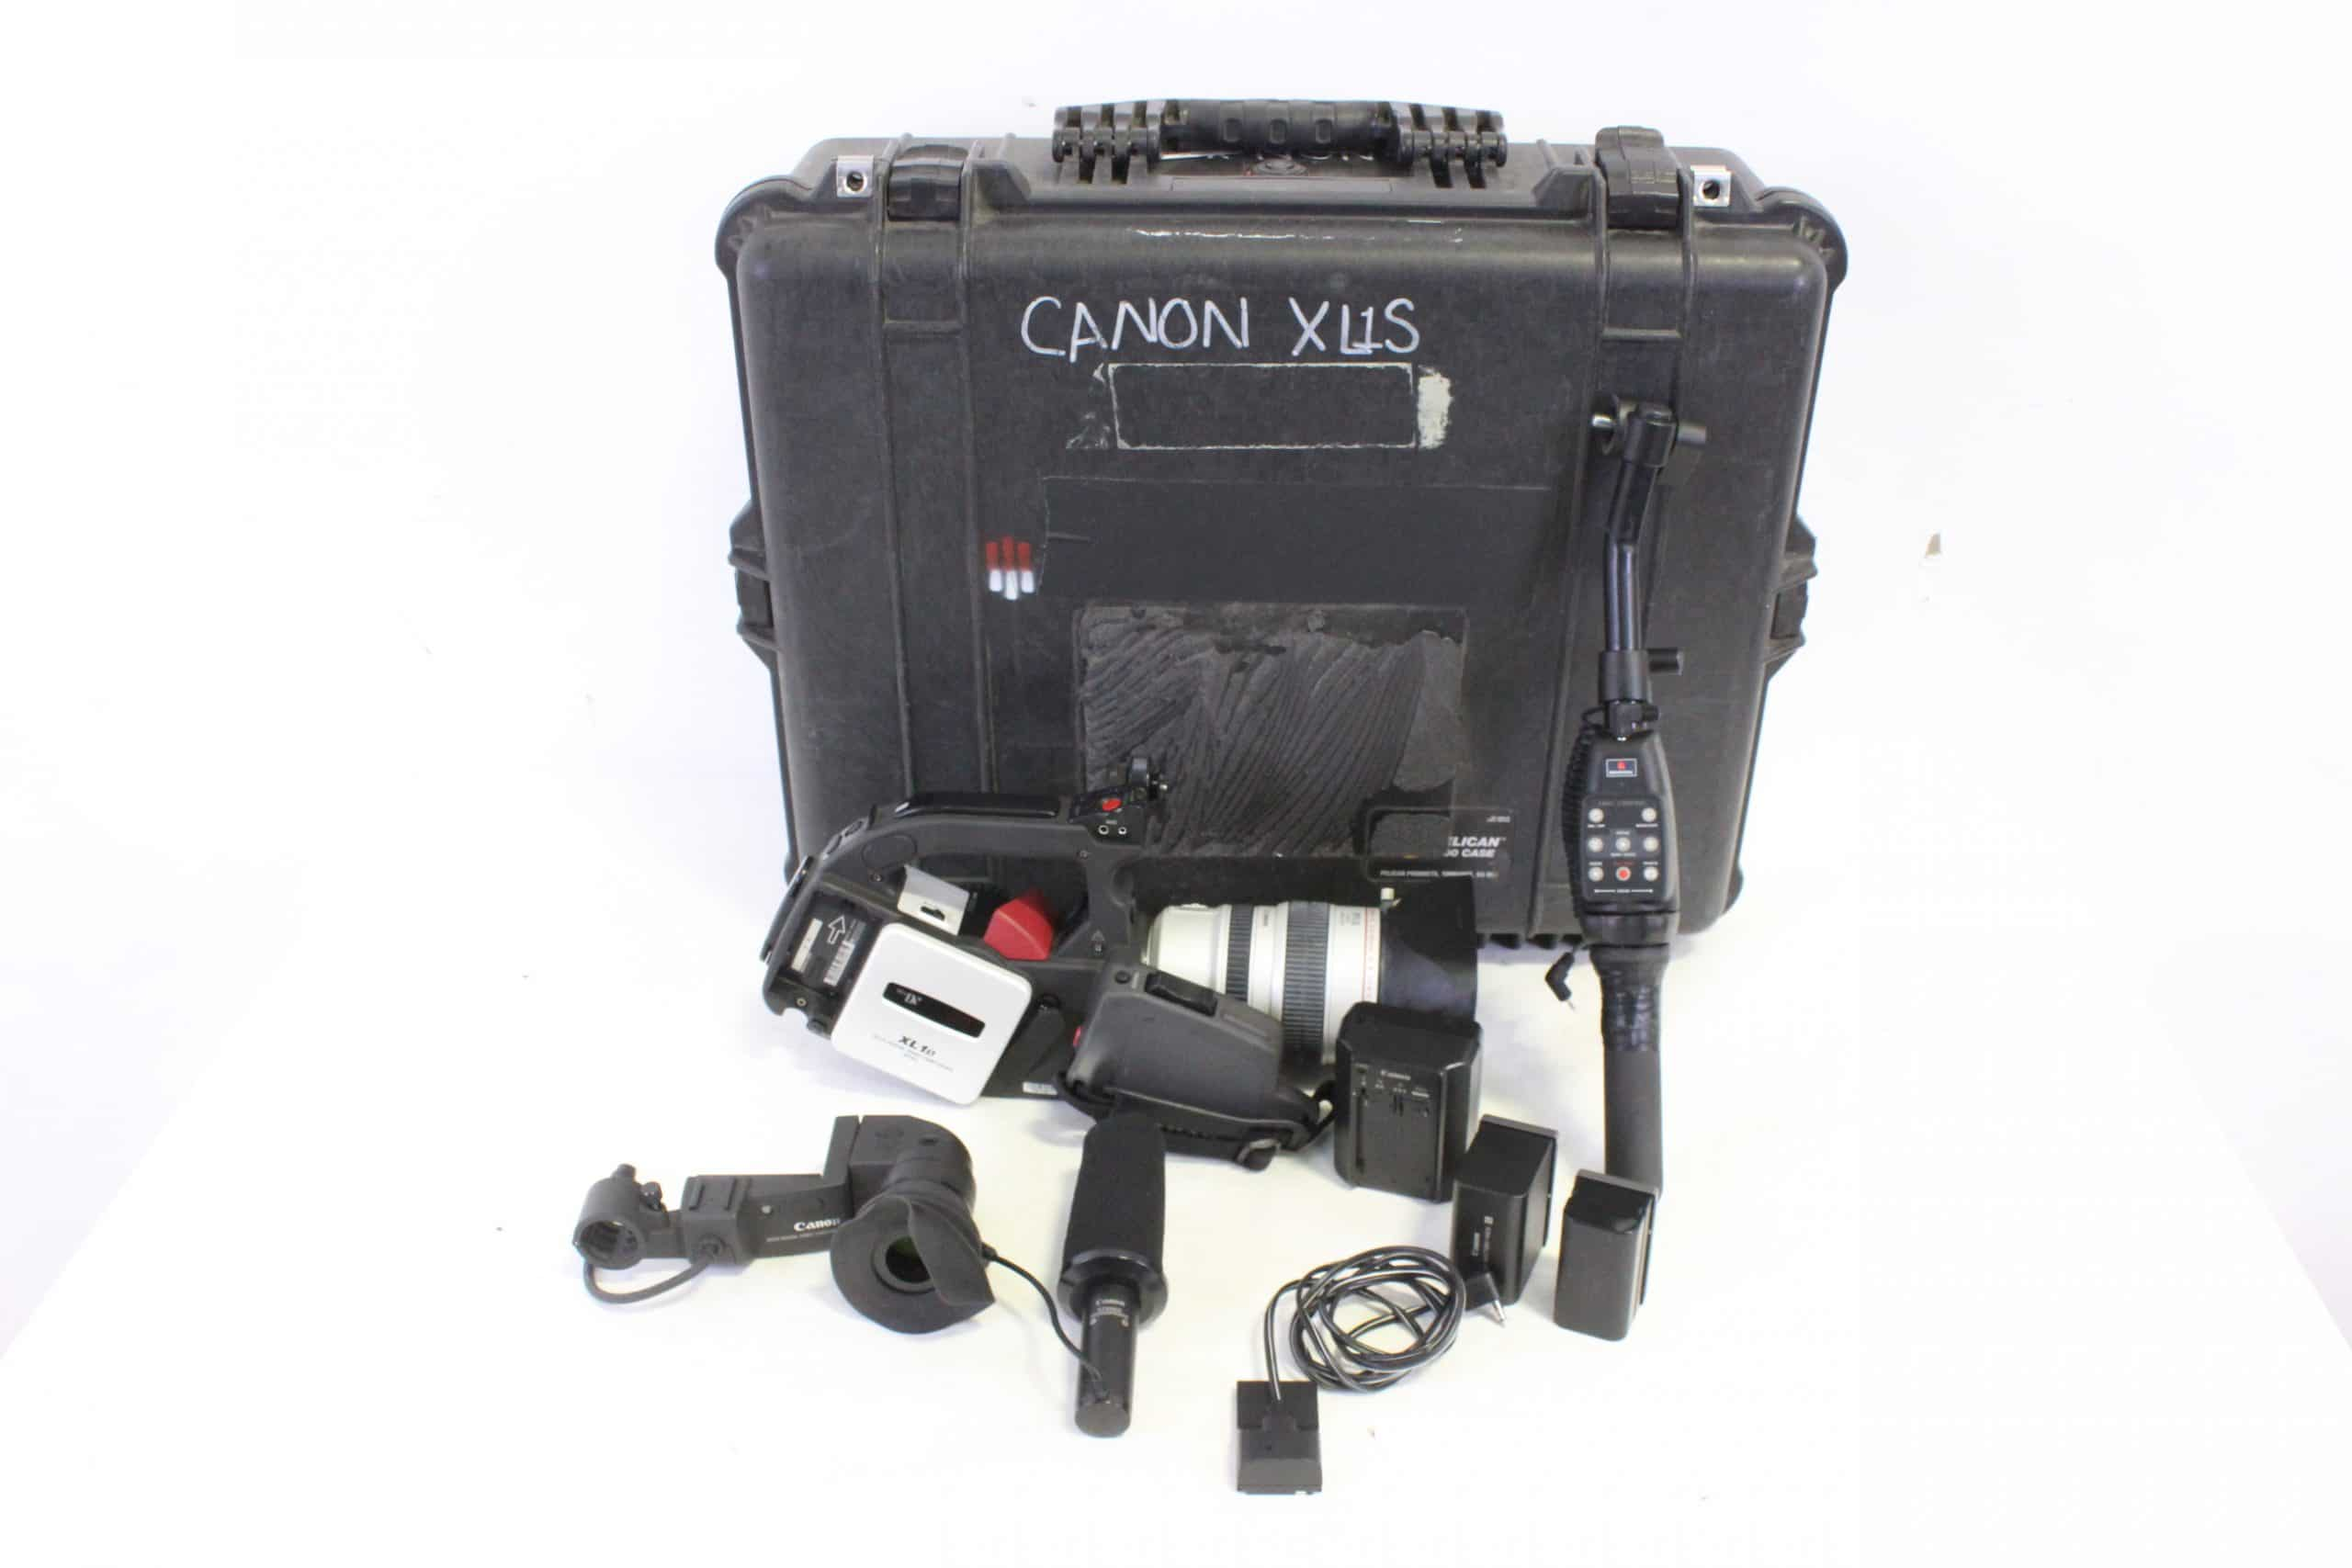 canon-xl1s-3ccd-digital-camcorder-w-canon-shotgun-microphone-canon-16x-zoom-xl-55-80mm-is-ii-video-lens-manfrotto-zoom-focus-controller-in-pelican-case main